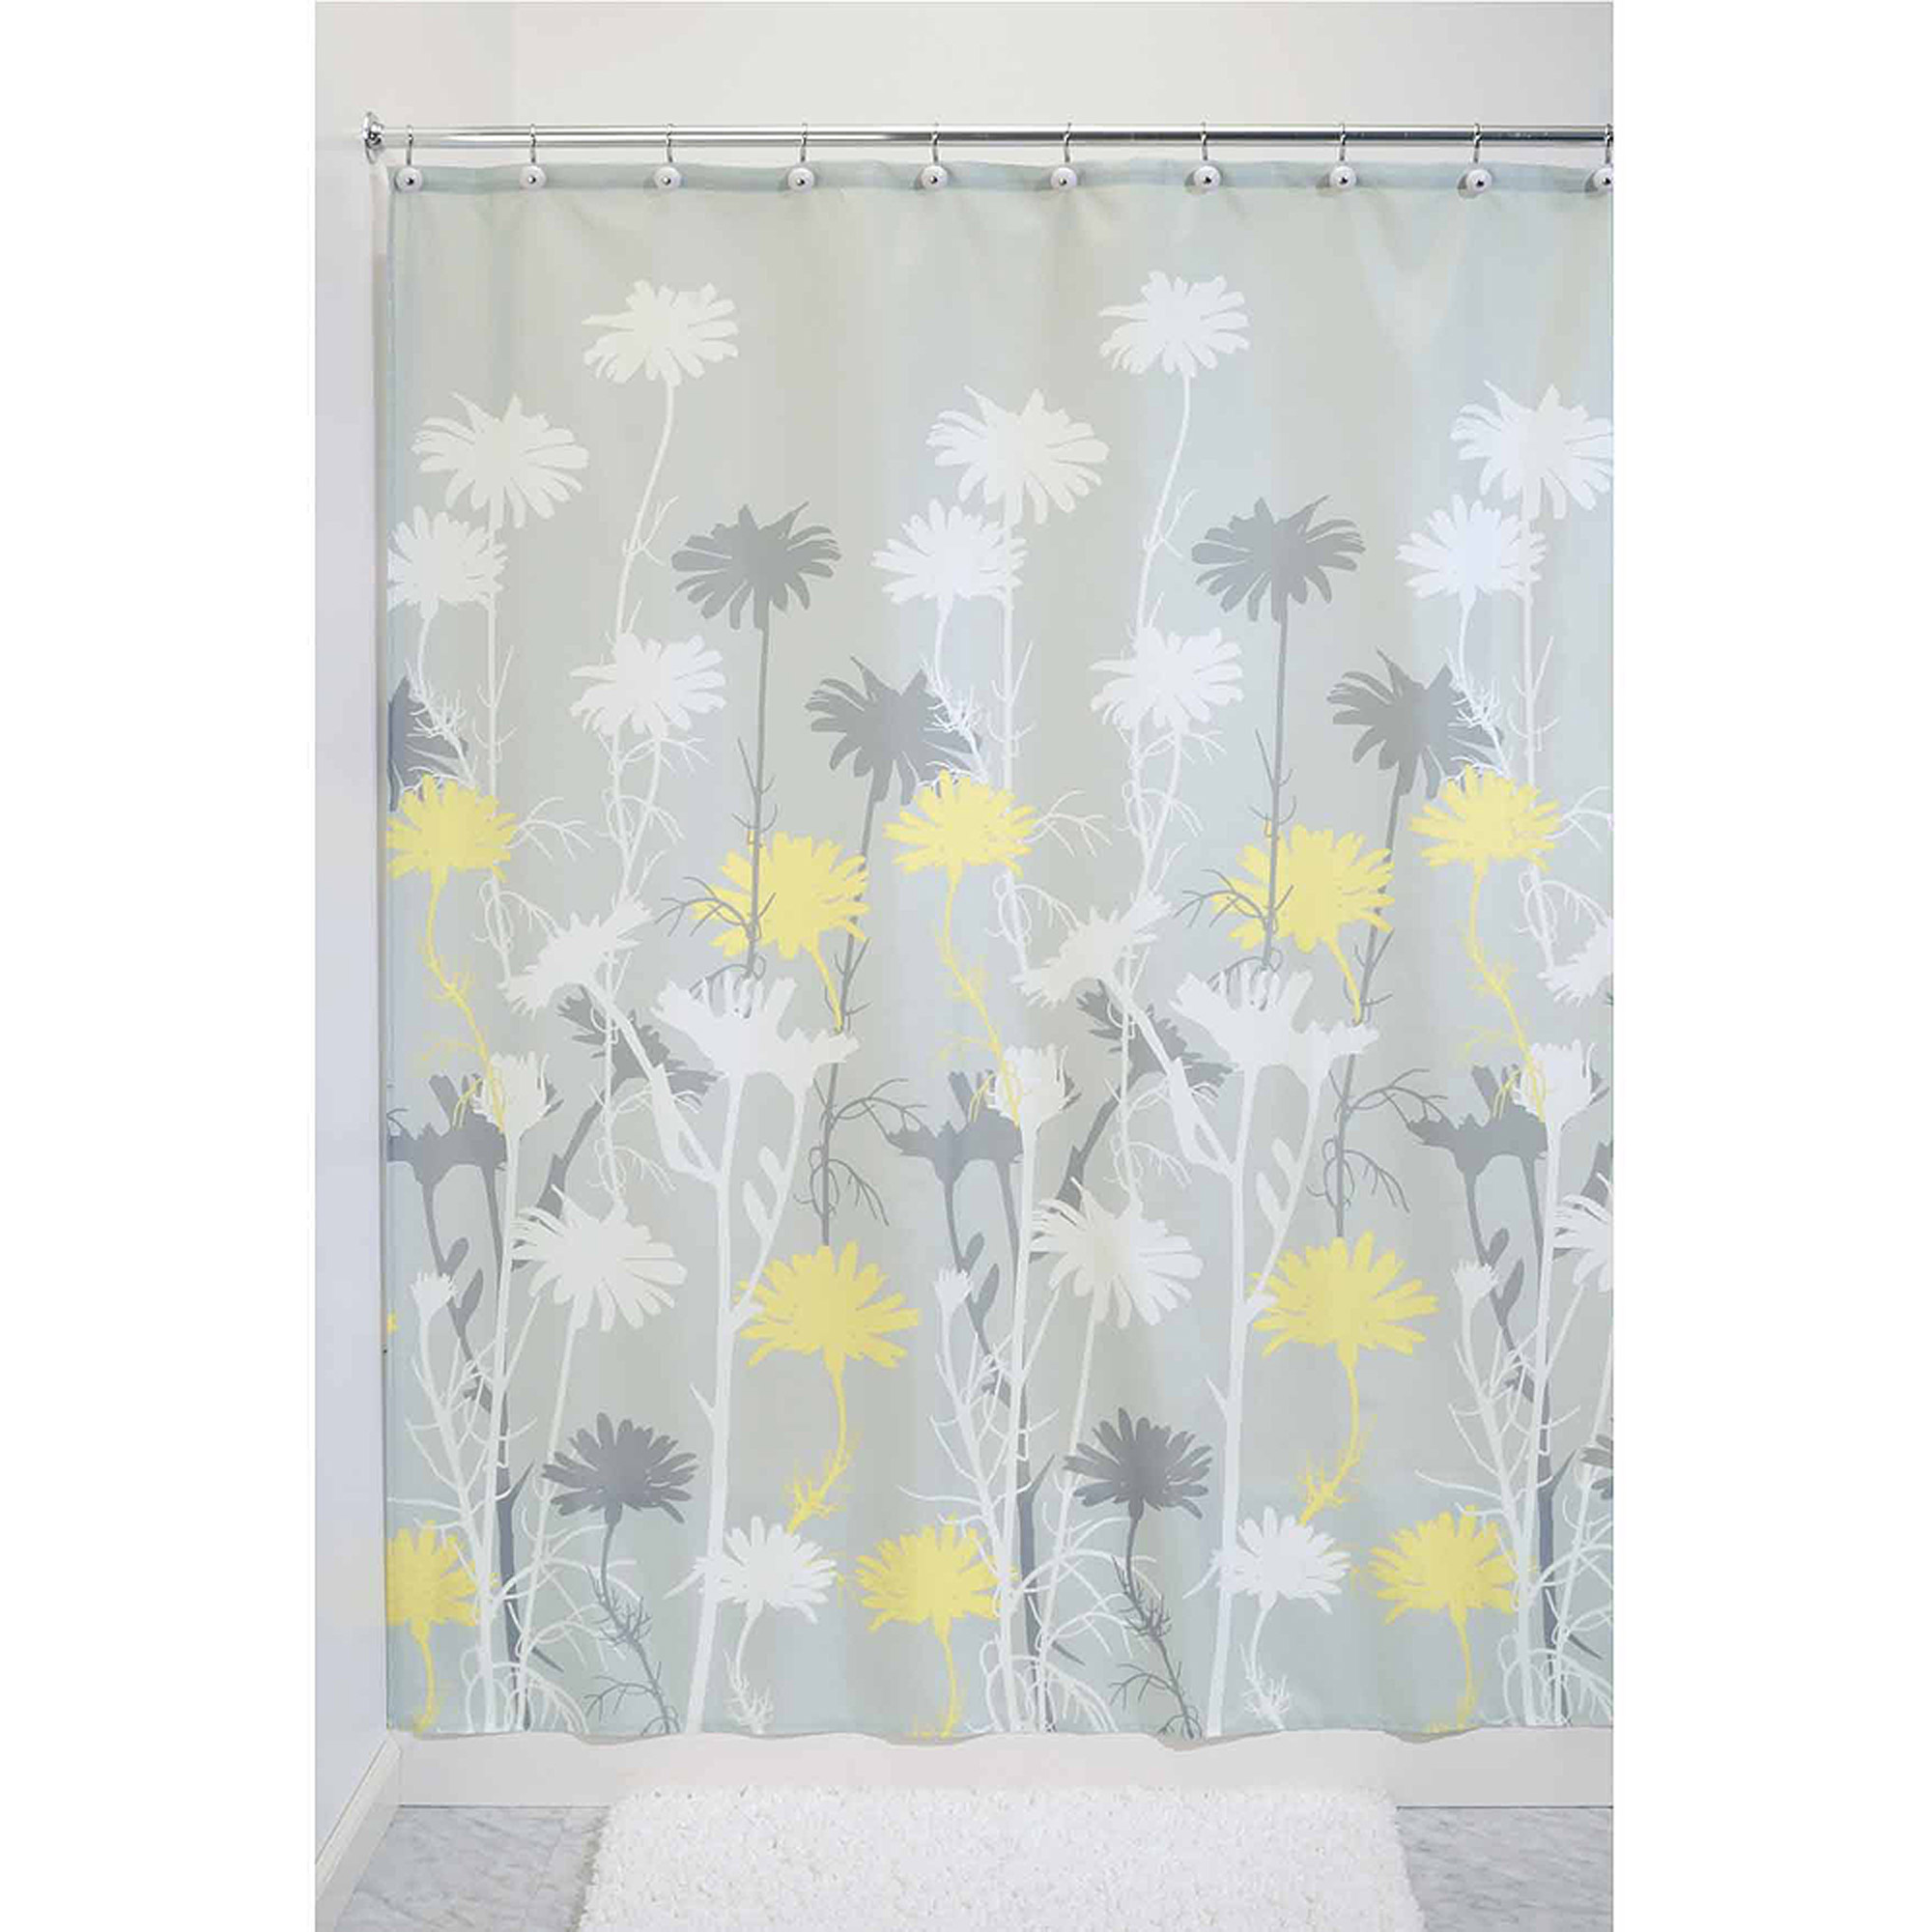 InterDesign Daizy Fabric Shower Curtain, Various Sizes & Colors